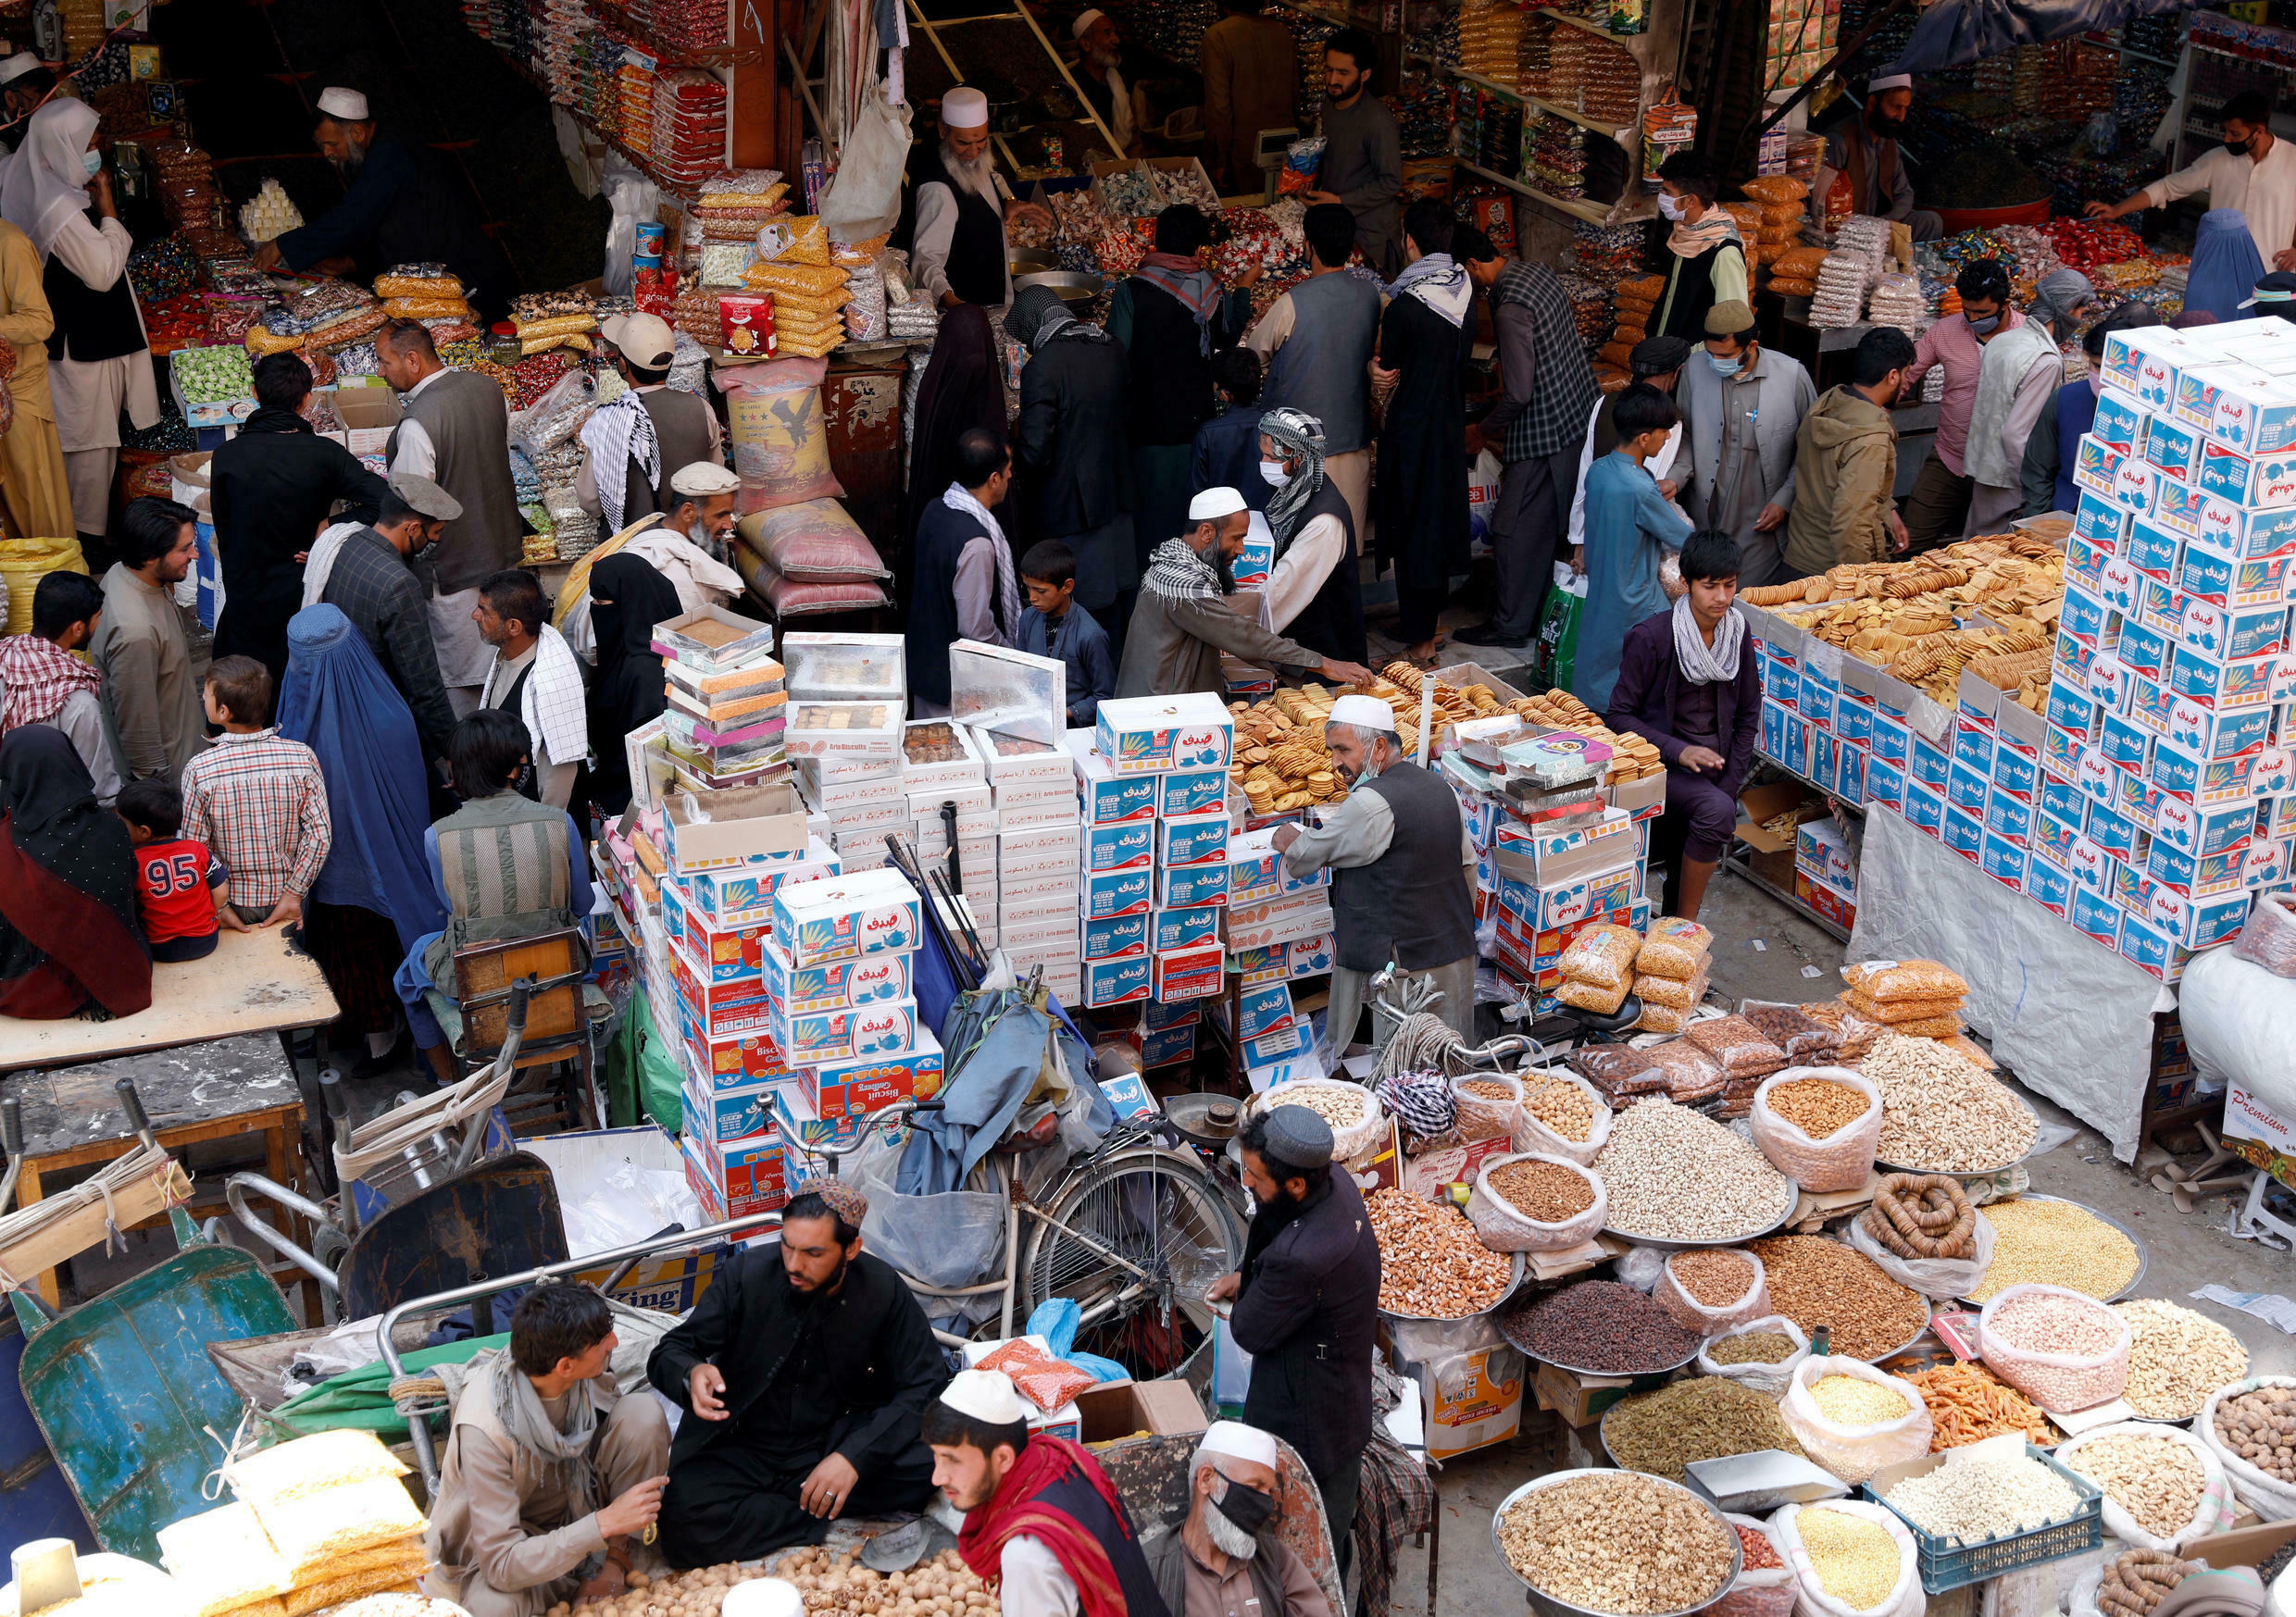 People shop for festive goods in preparation for Eid al-Fitr, marking the end of the fasting month of Ramadan amid the spread of the coronavirus disease (COVID-19), in Kabul, Afghanistan May 21, 2020.